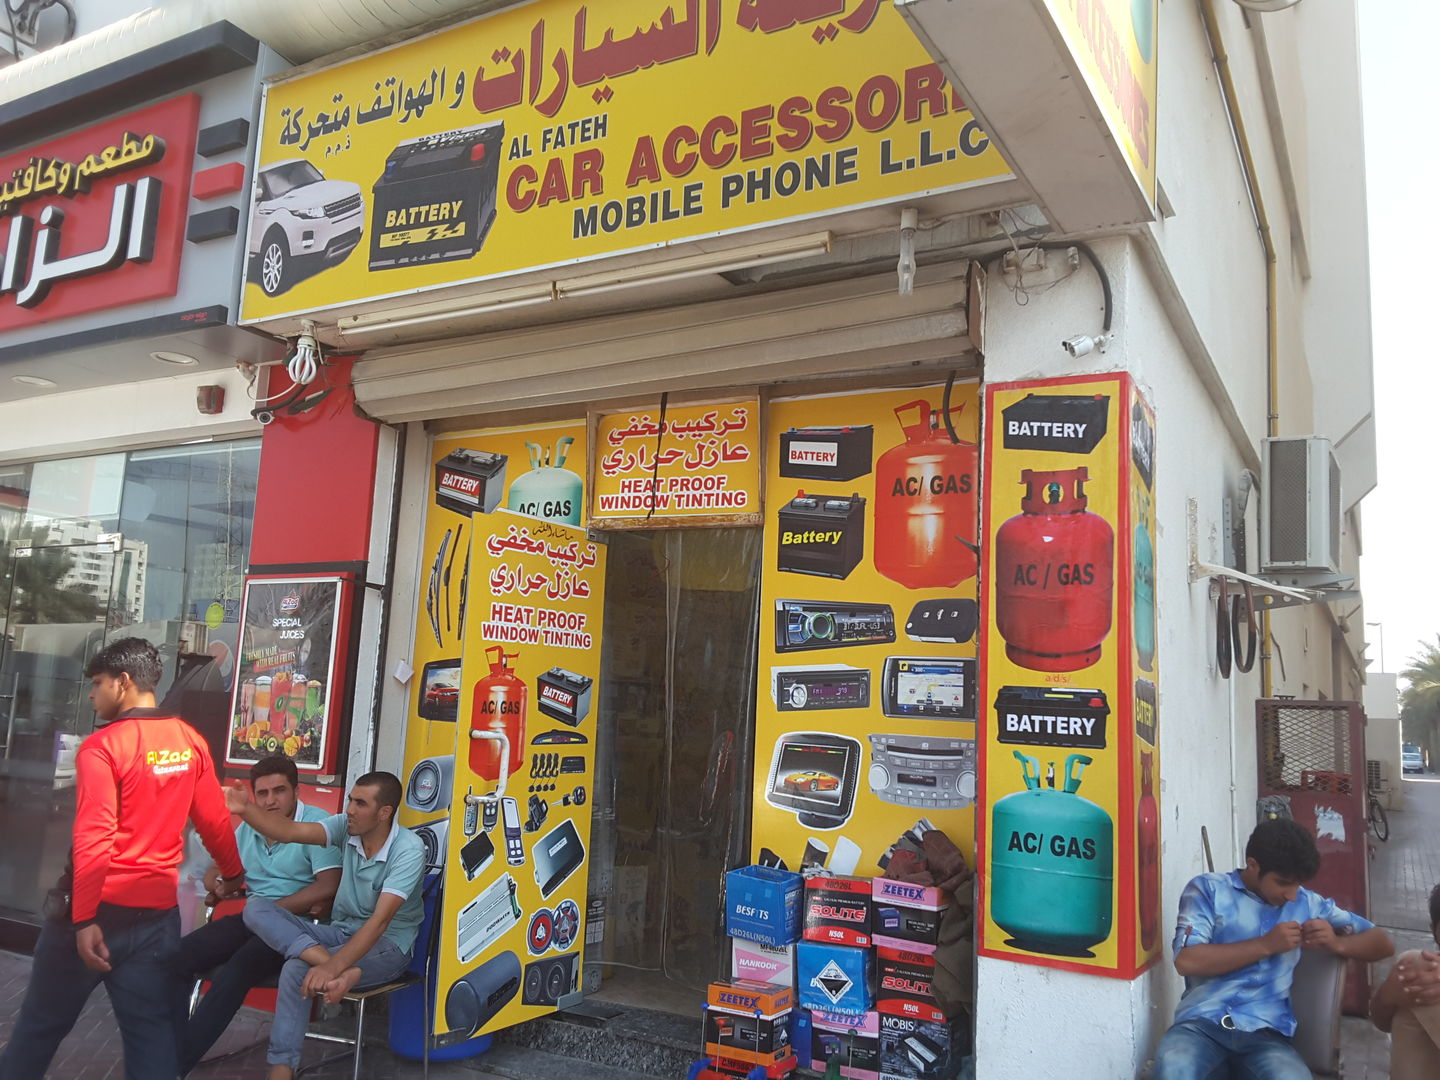 HiDubai-business-al-fateh-car-accessories-mobile-phones-shopping-consumer-electronics-al-qusais-2-dubai-2